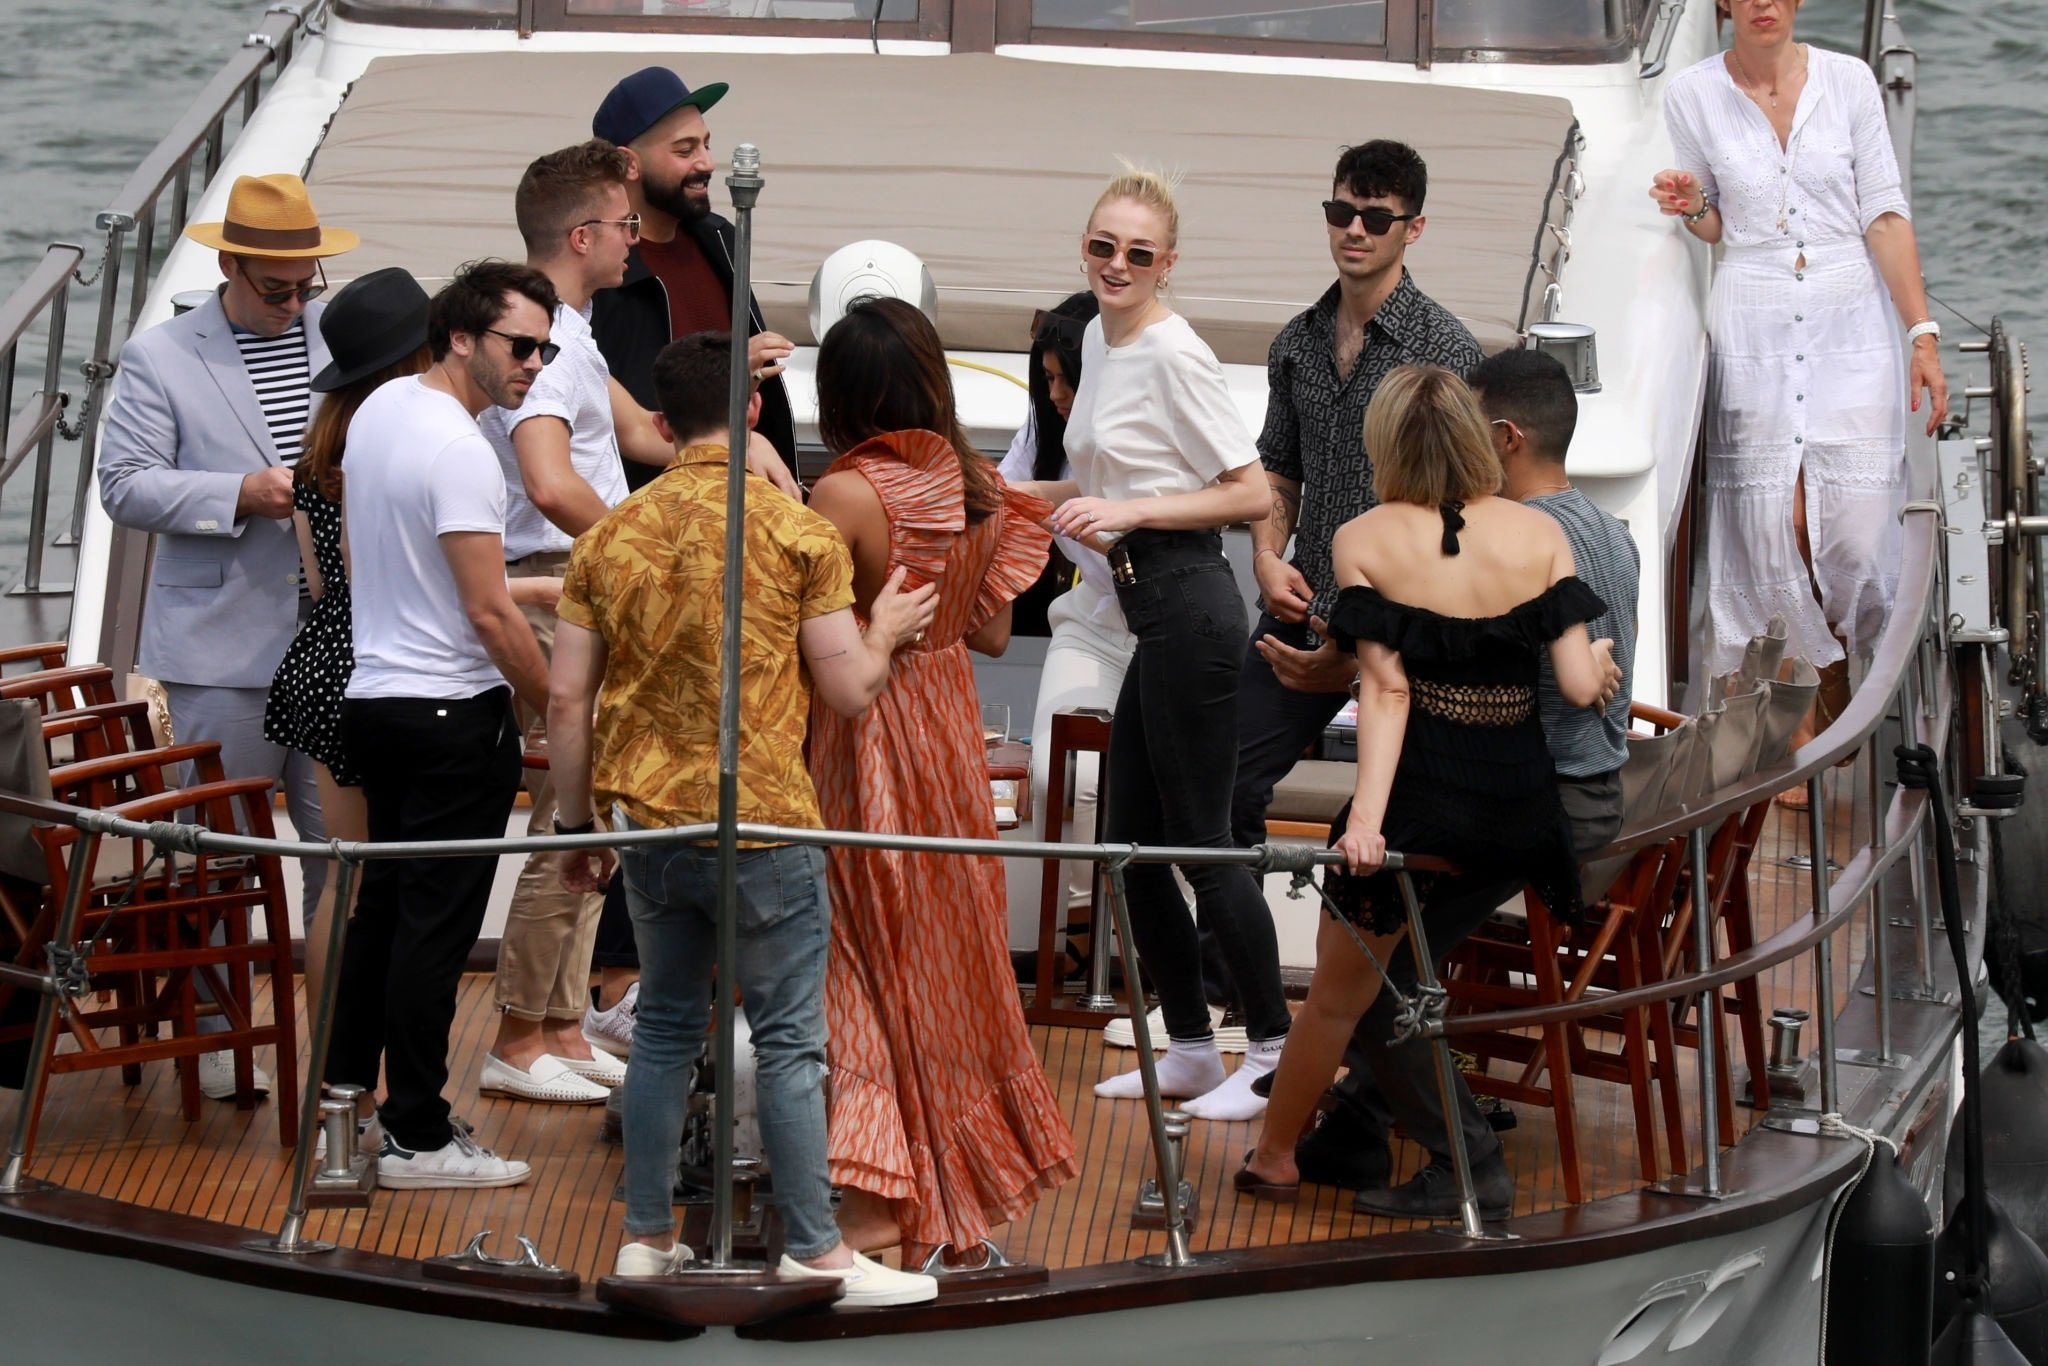 Sophie Turner And Priyanka Chopra Are Seen On A Boat Cruise On The River Seine Set 2